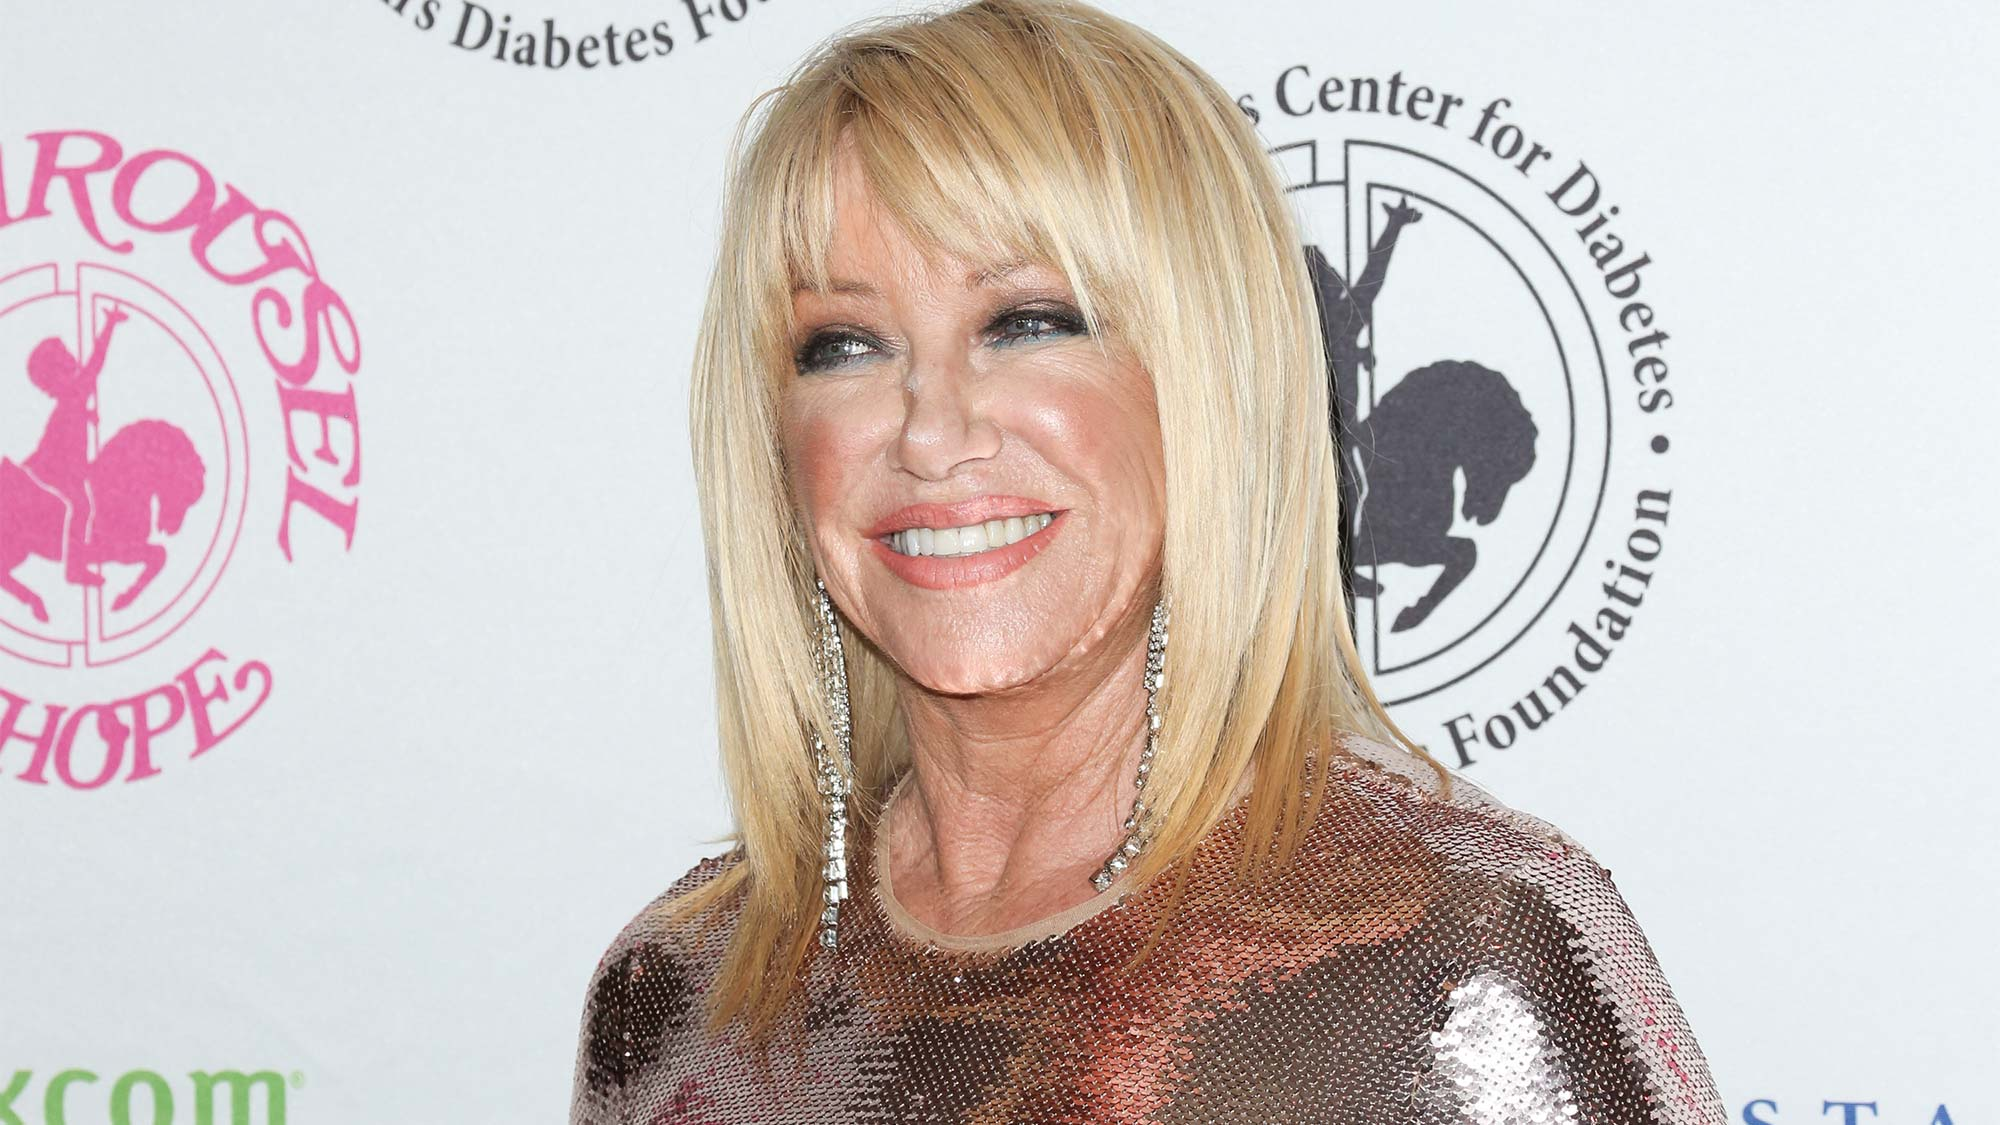 Suzanne Somers sells in palm springs